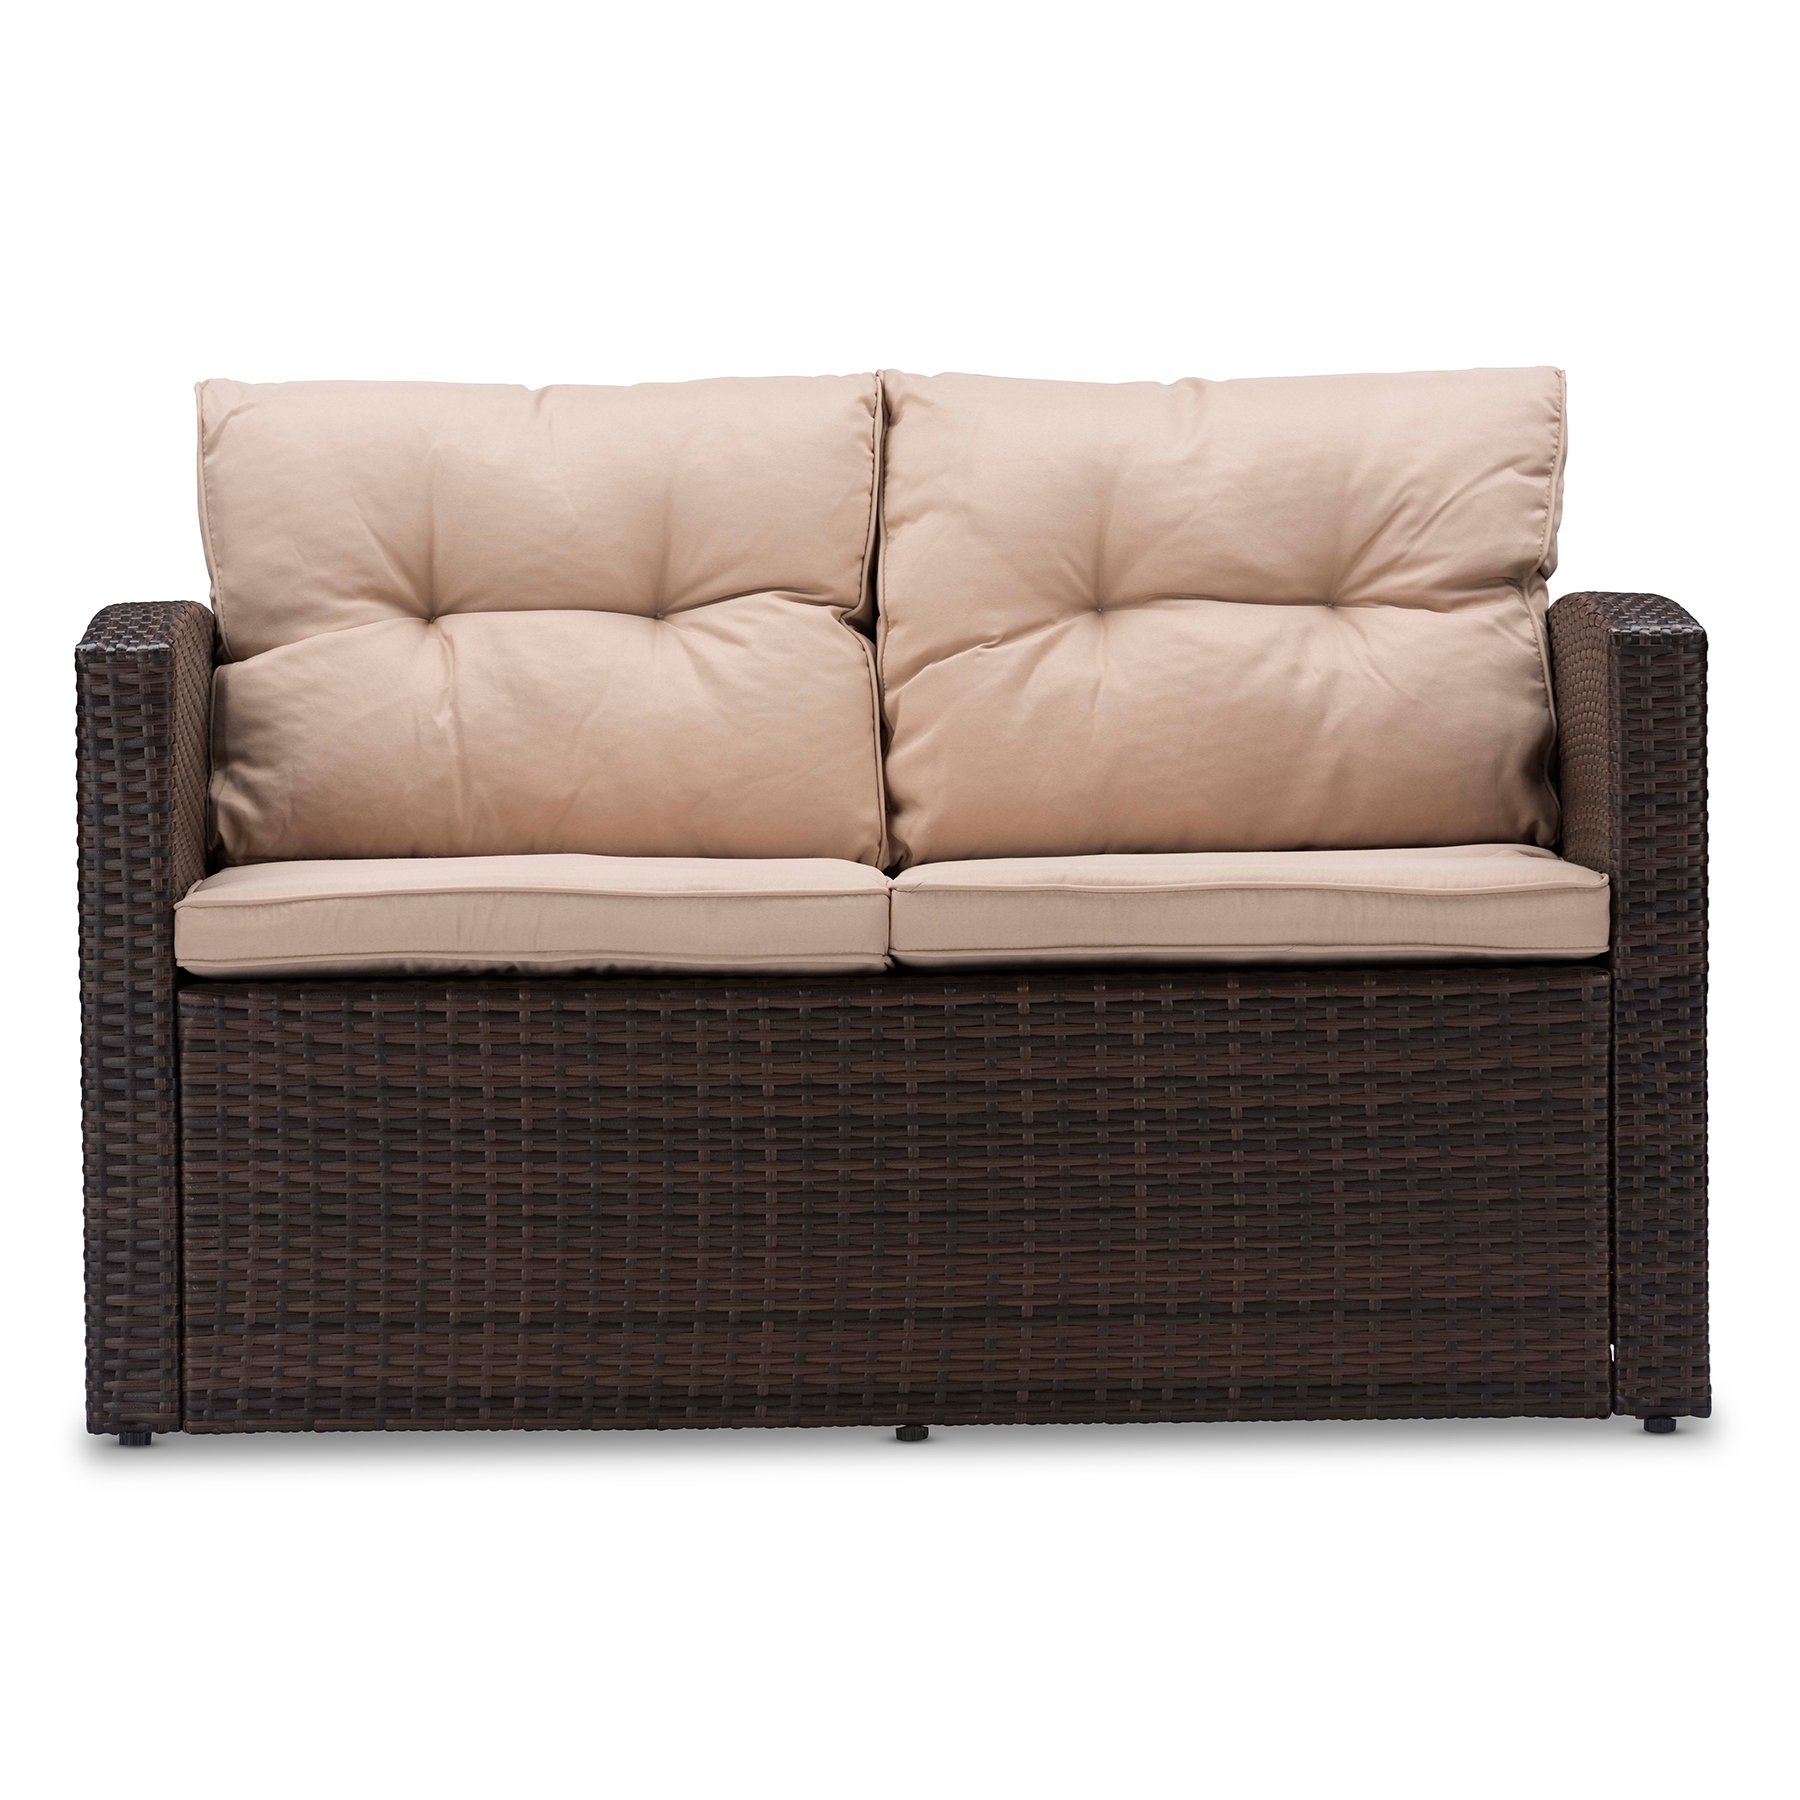 ... Baxton Studio Imperia Modern And Contemporary PE Rattan 4 Piece Outdoor  Loveseat And Chairs In ...